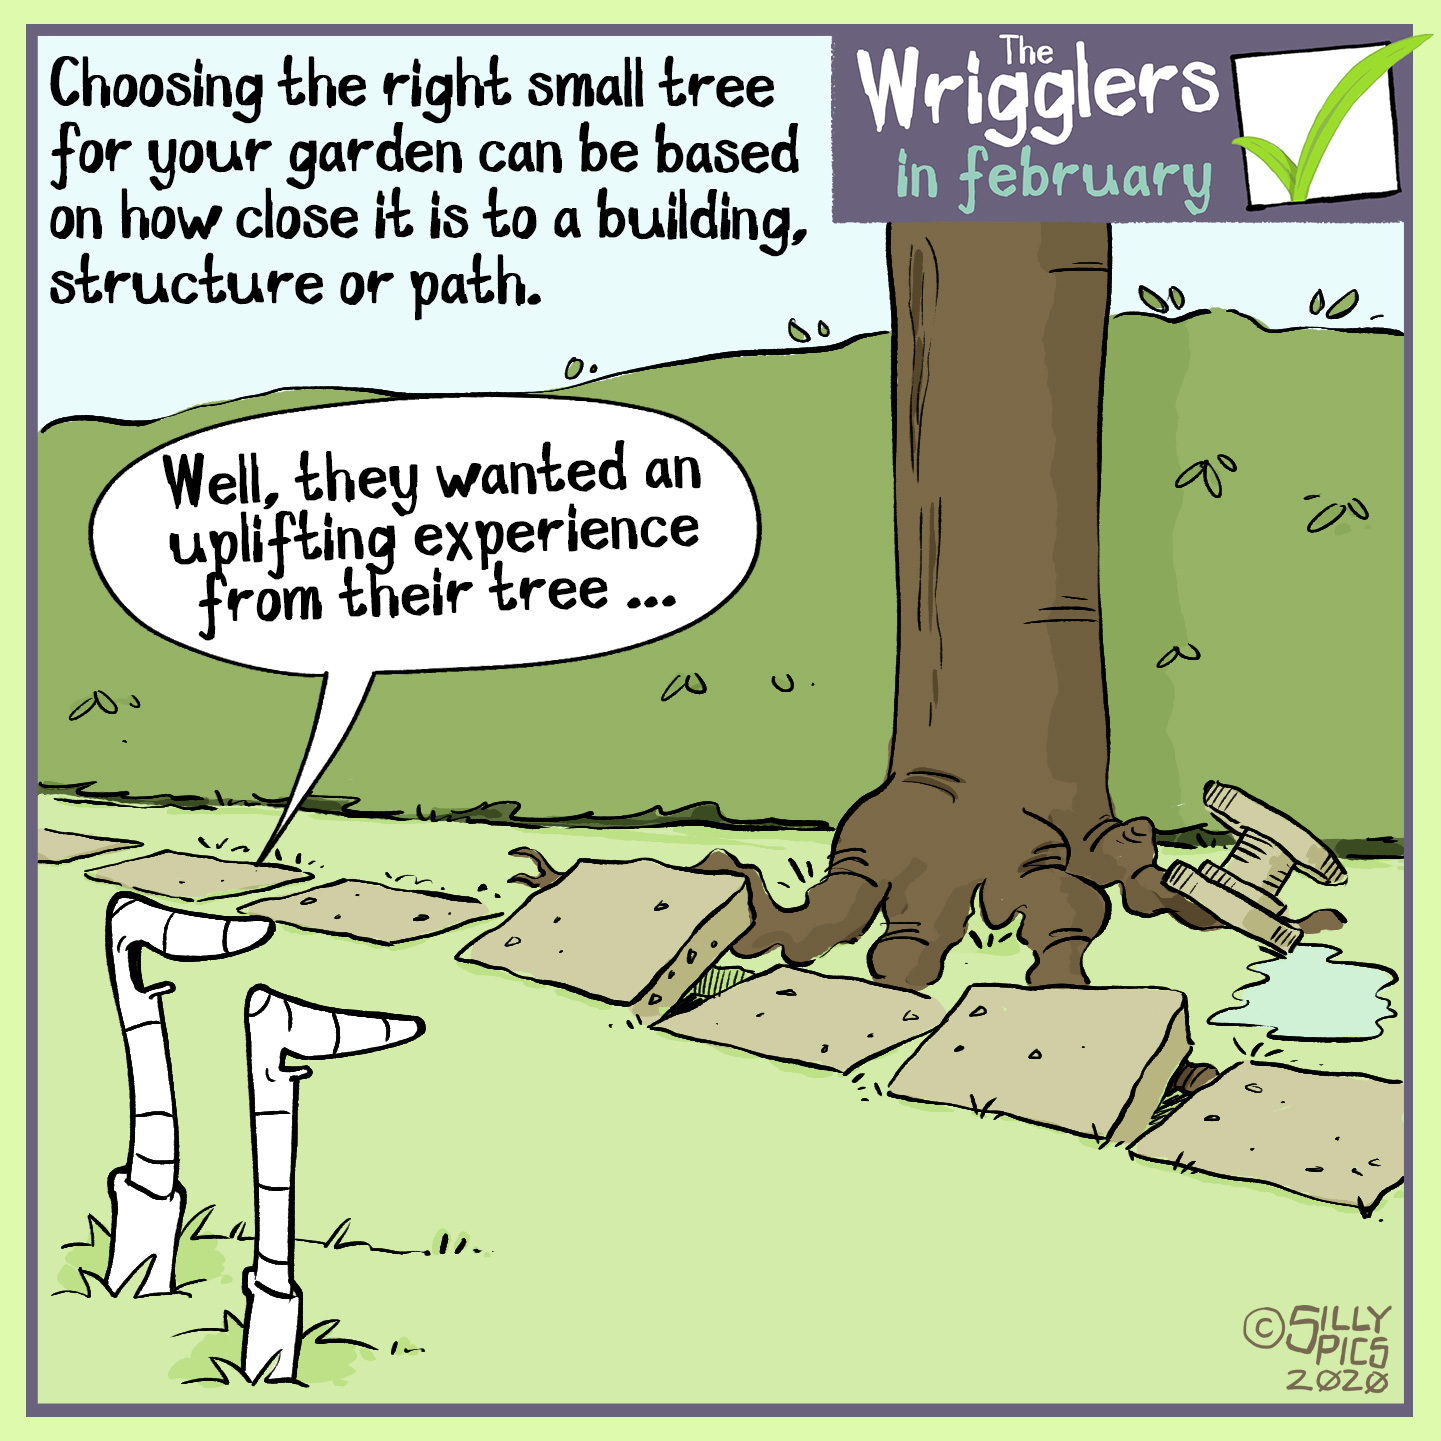 cartoon about choosing trees for your garden, being carefull of root growth